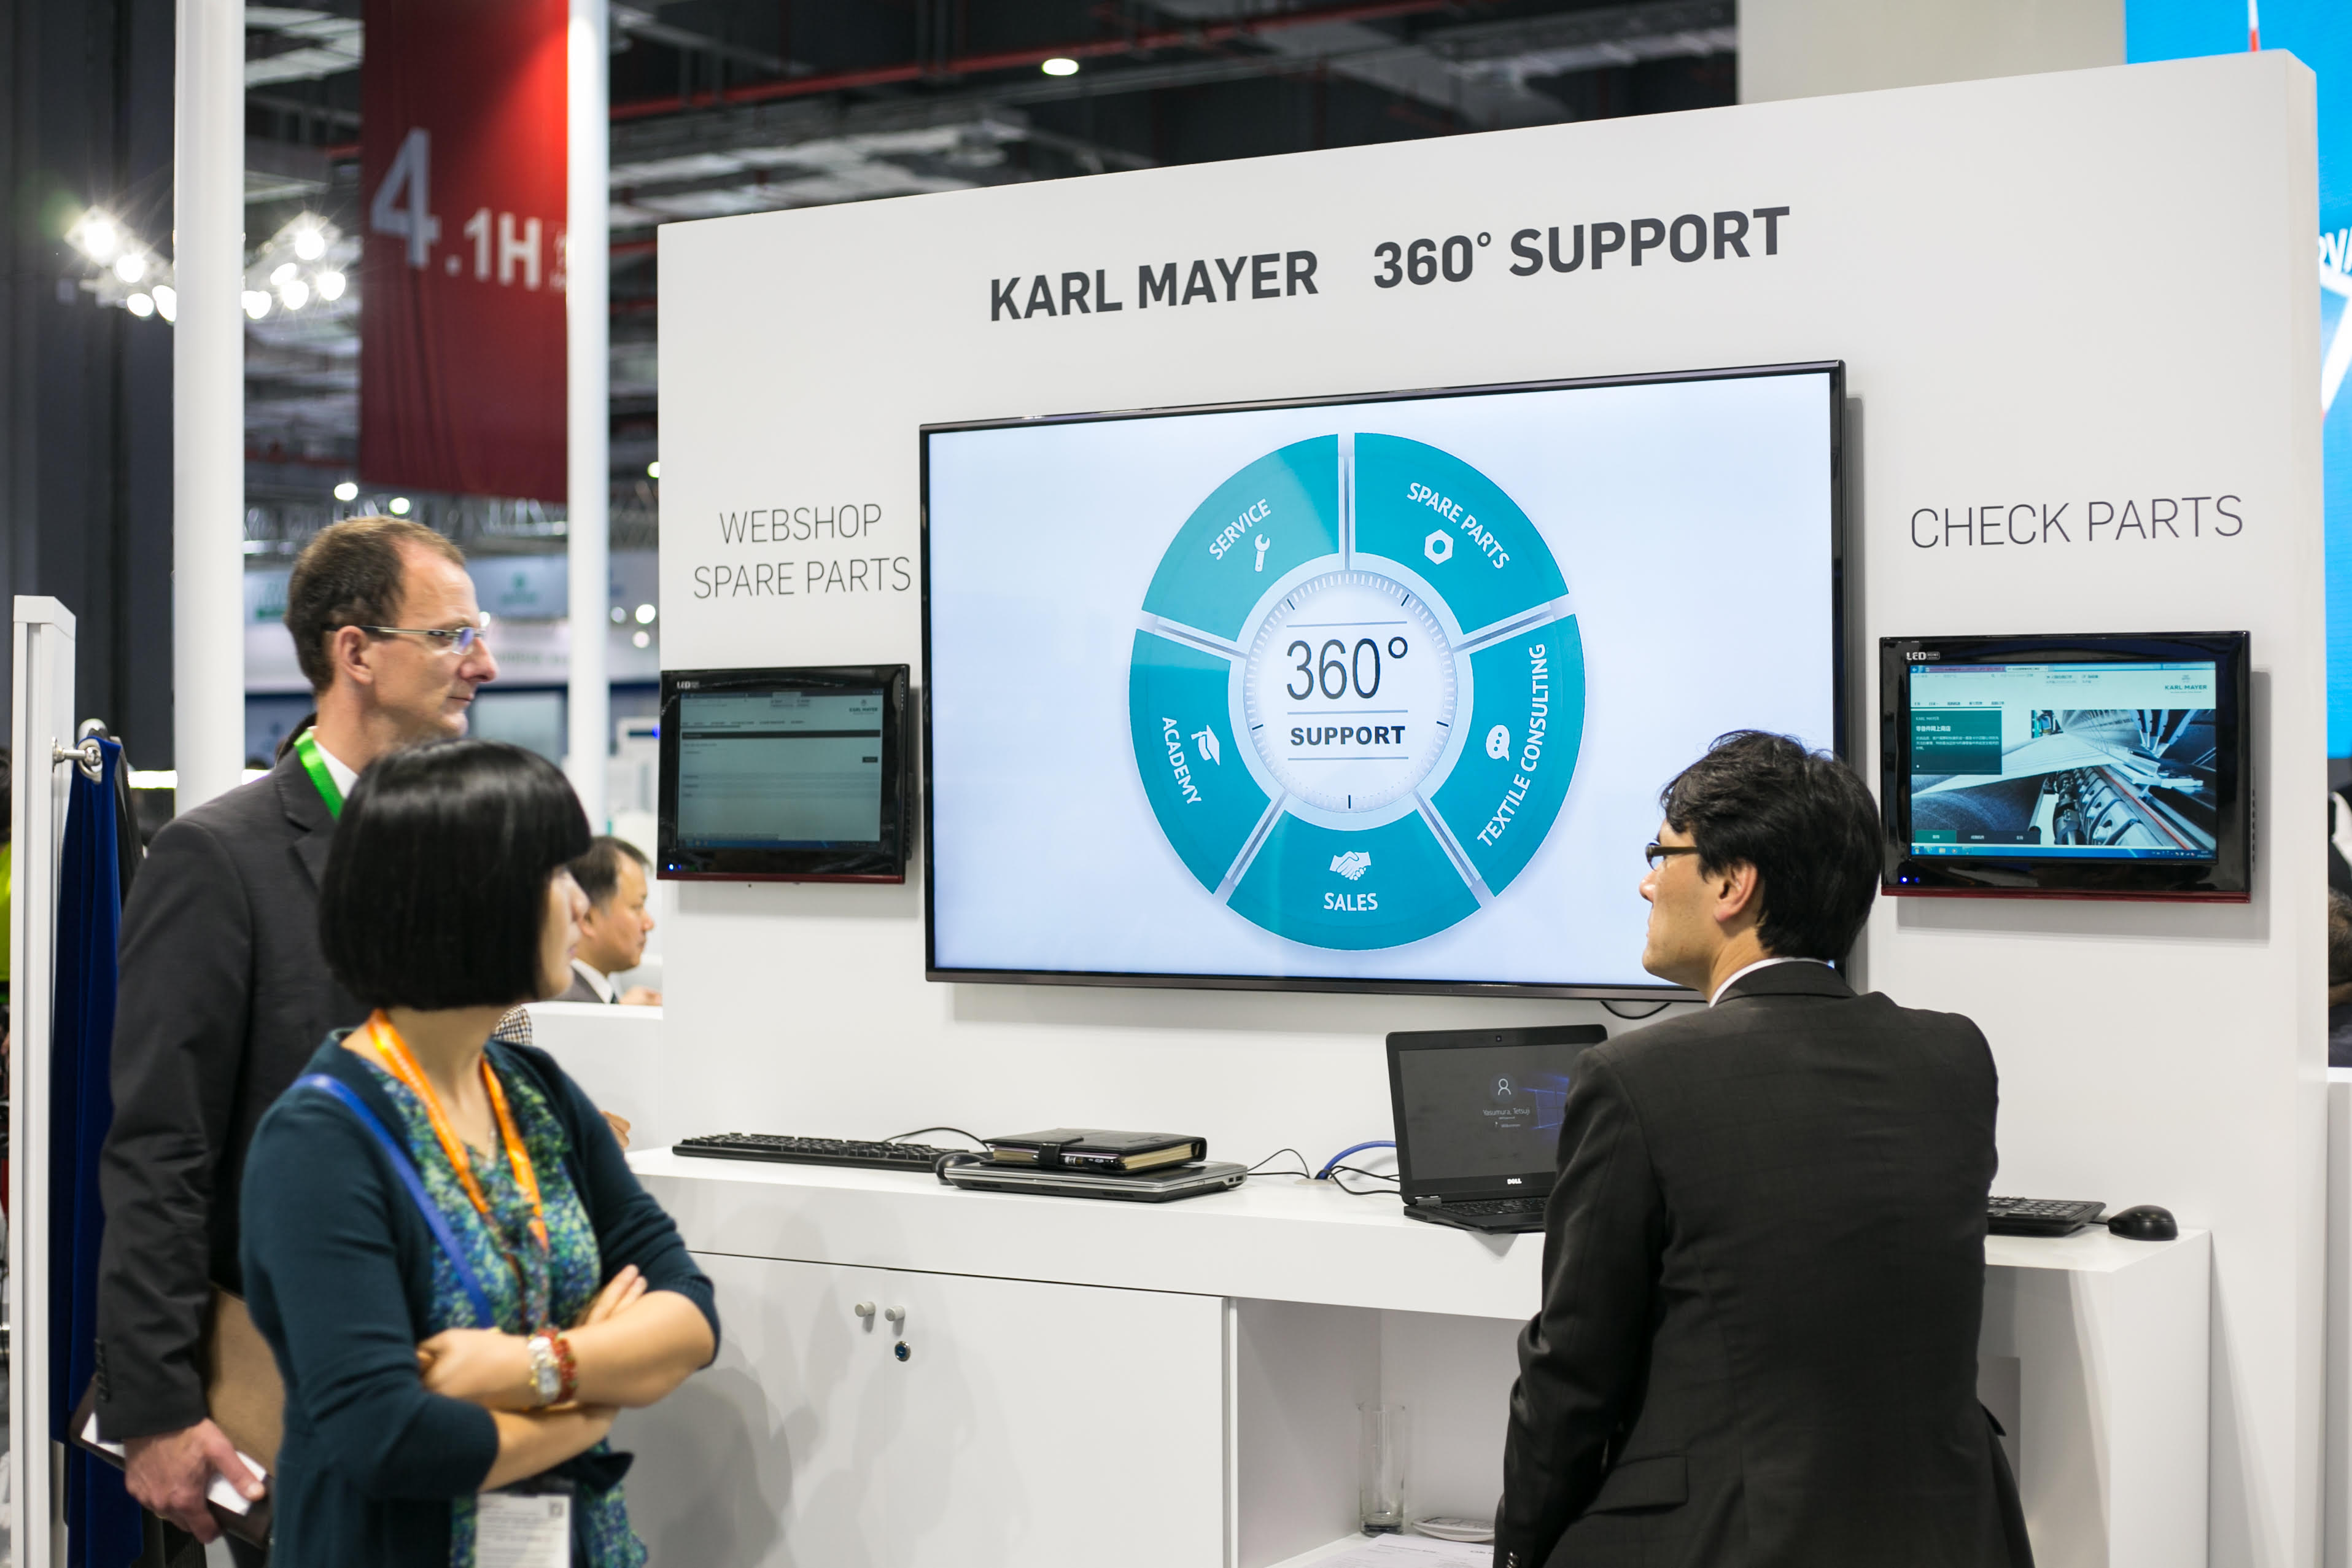 Presenting the Karl Mayer Webshop Spare Parts as a component part of the company's 360° technical support service at ITMA ASIA + CITME 2016. © Karl Mayer